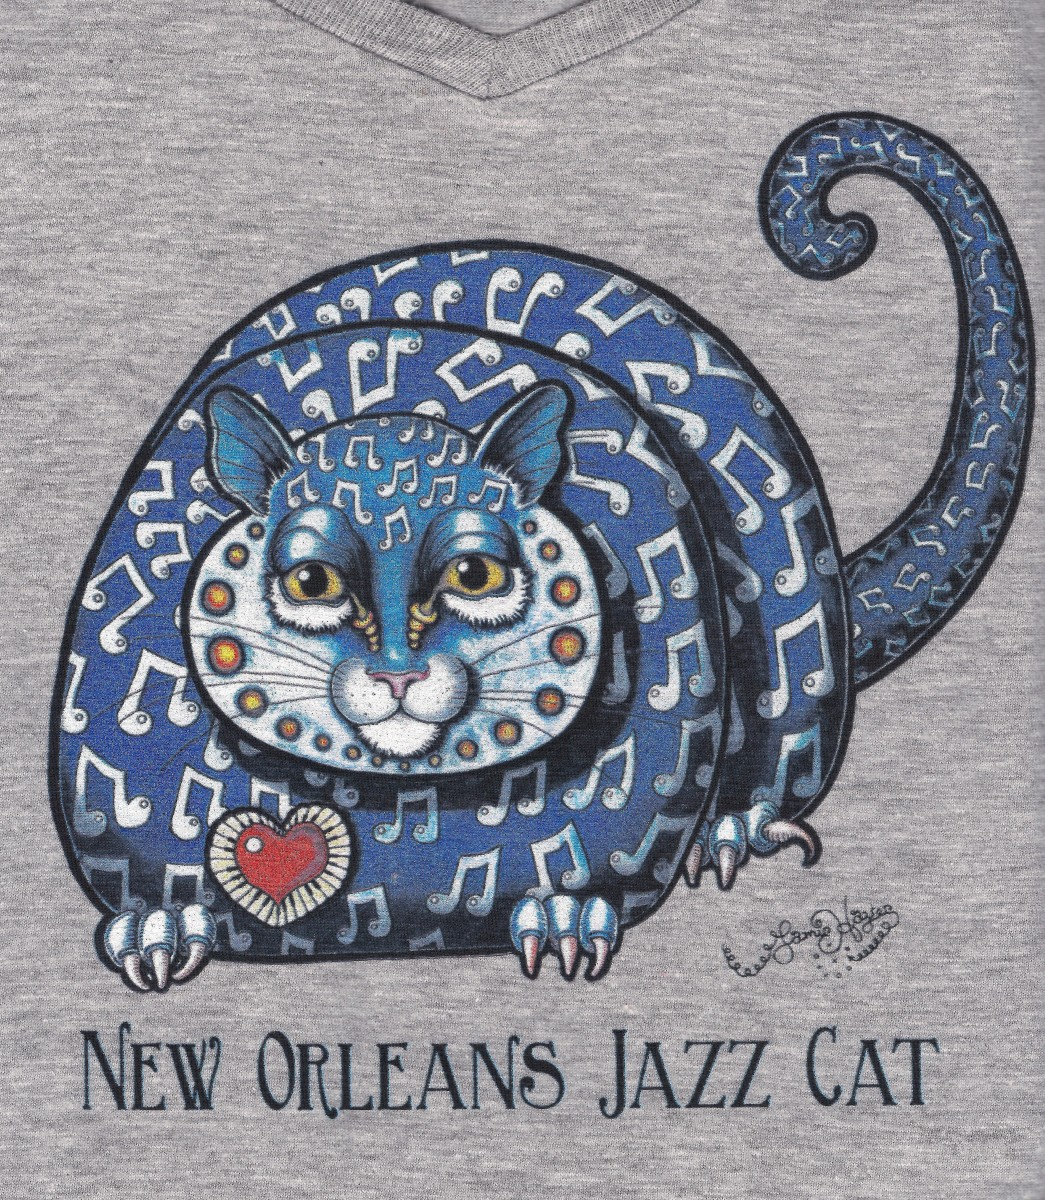 New orleans jazz cat ladies 100 cotton deep v neck t for T shirt printing new orleans